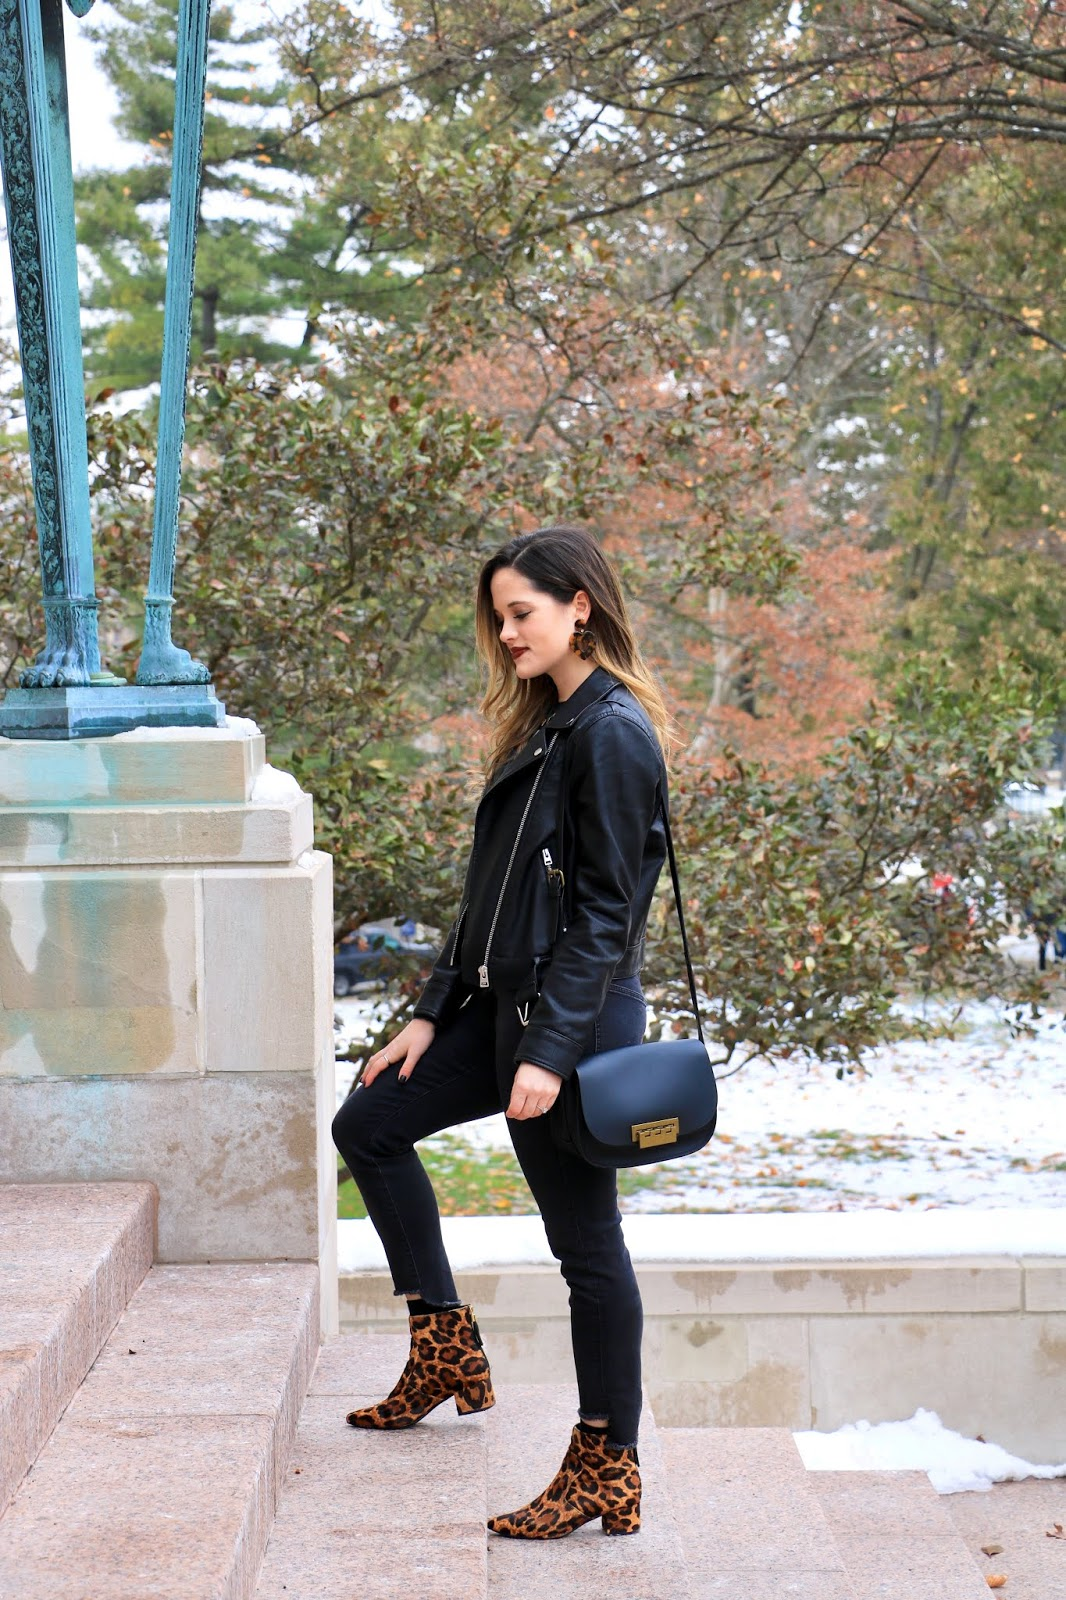 Nyc fashion blogger Kathleen Harper's leather jacket outfit idea.